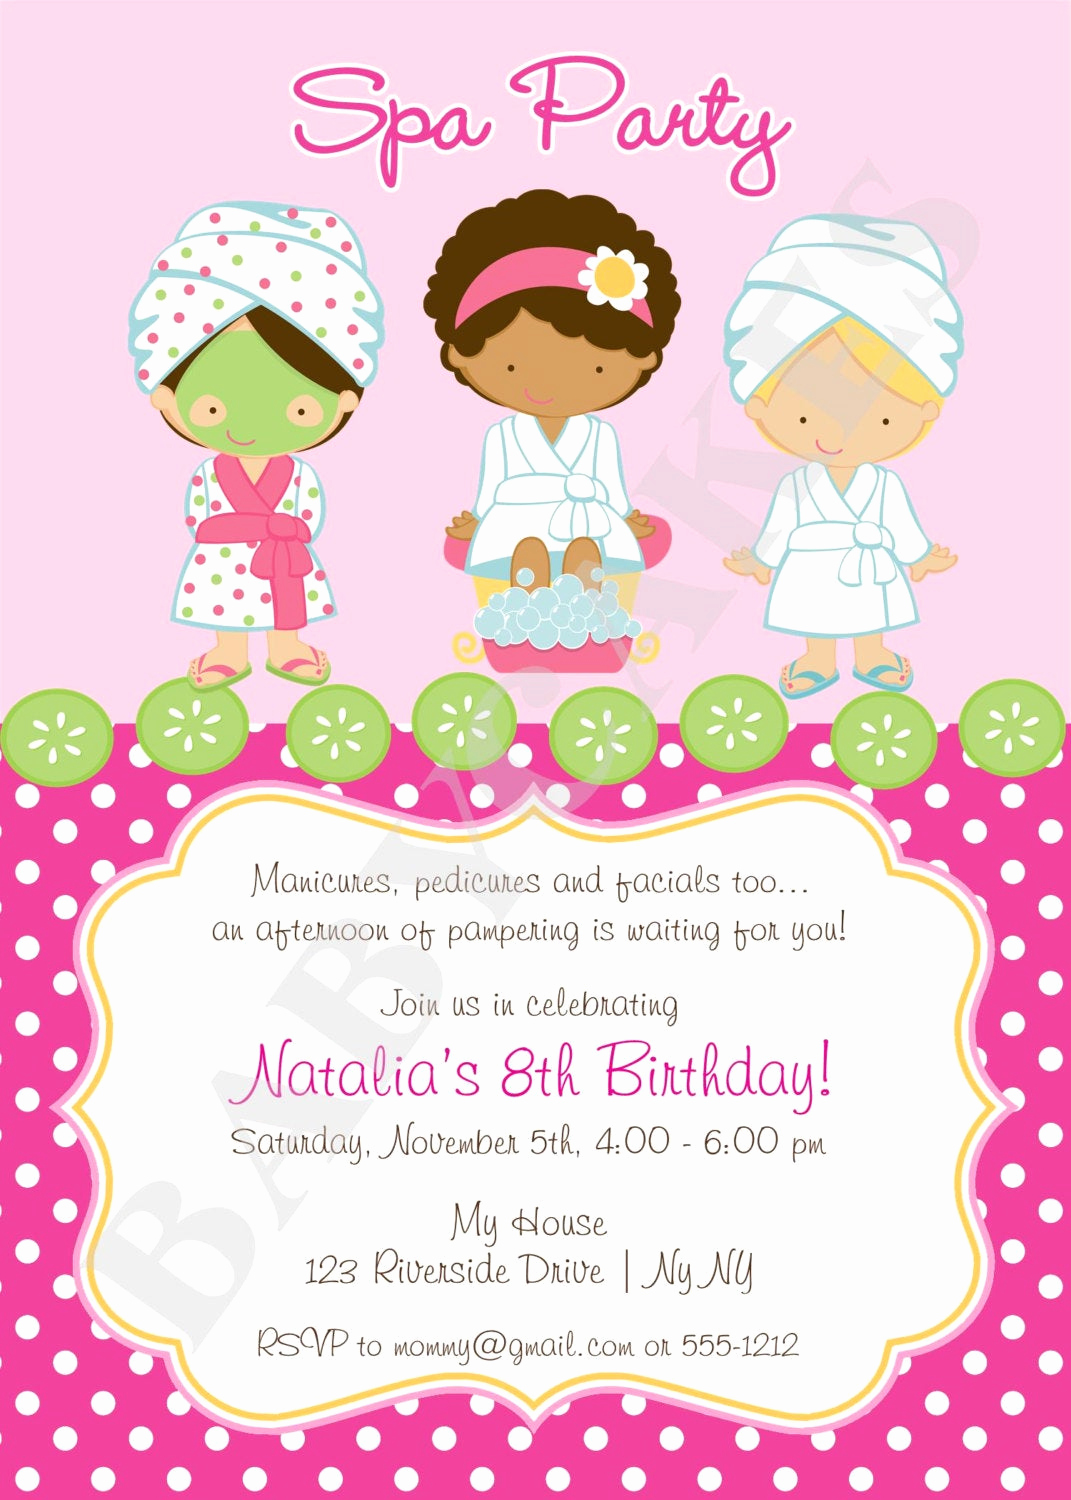 Spa Invitation Template Free Awesome Spa Party Invitation Diy Print Your Own Matching by